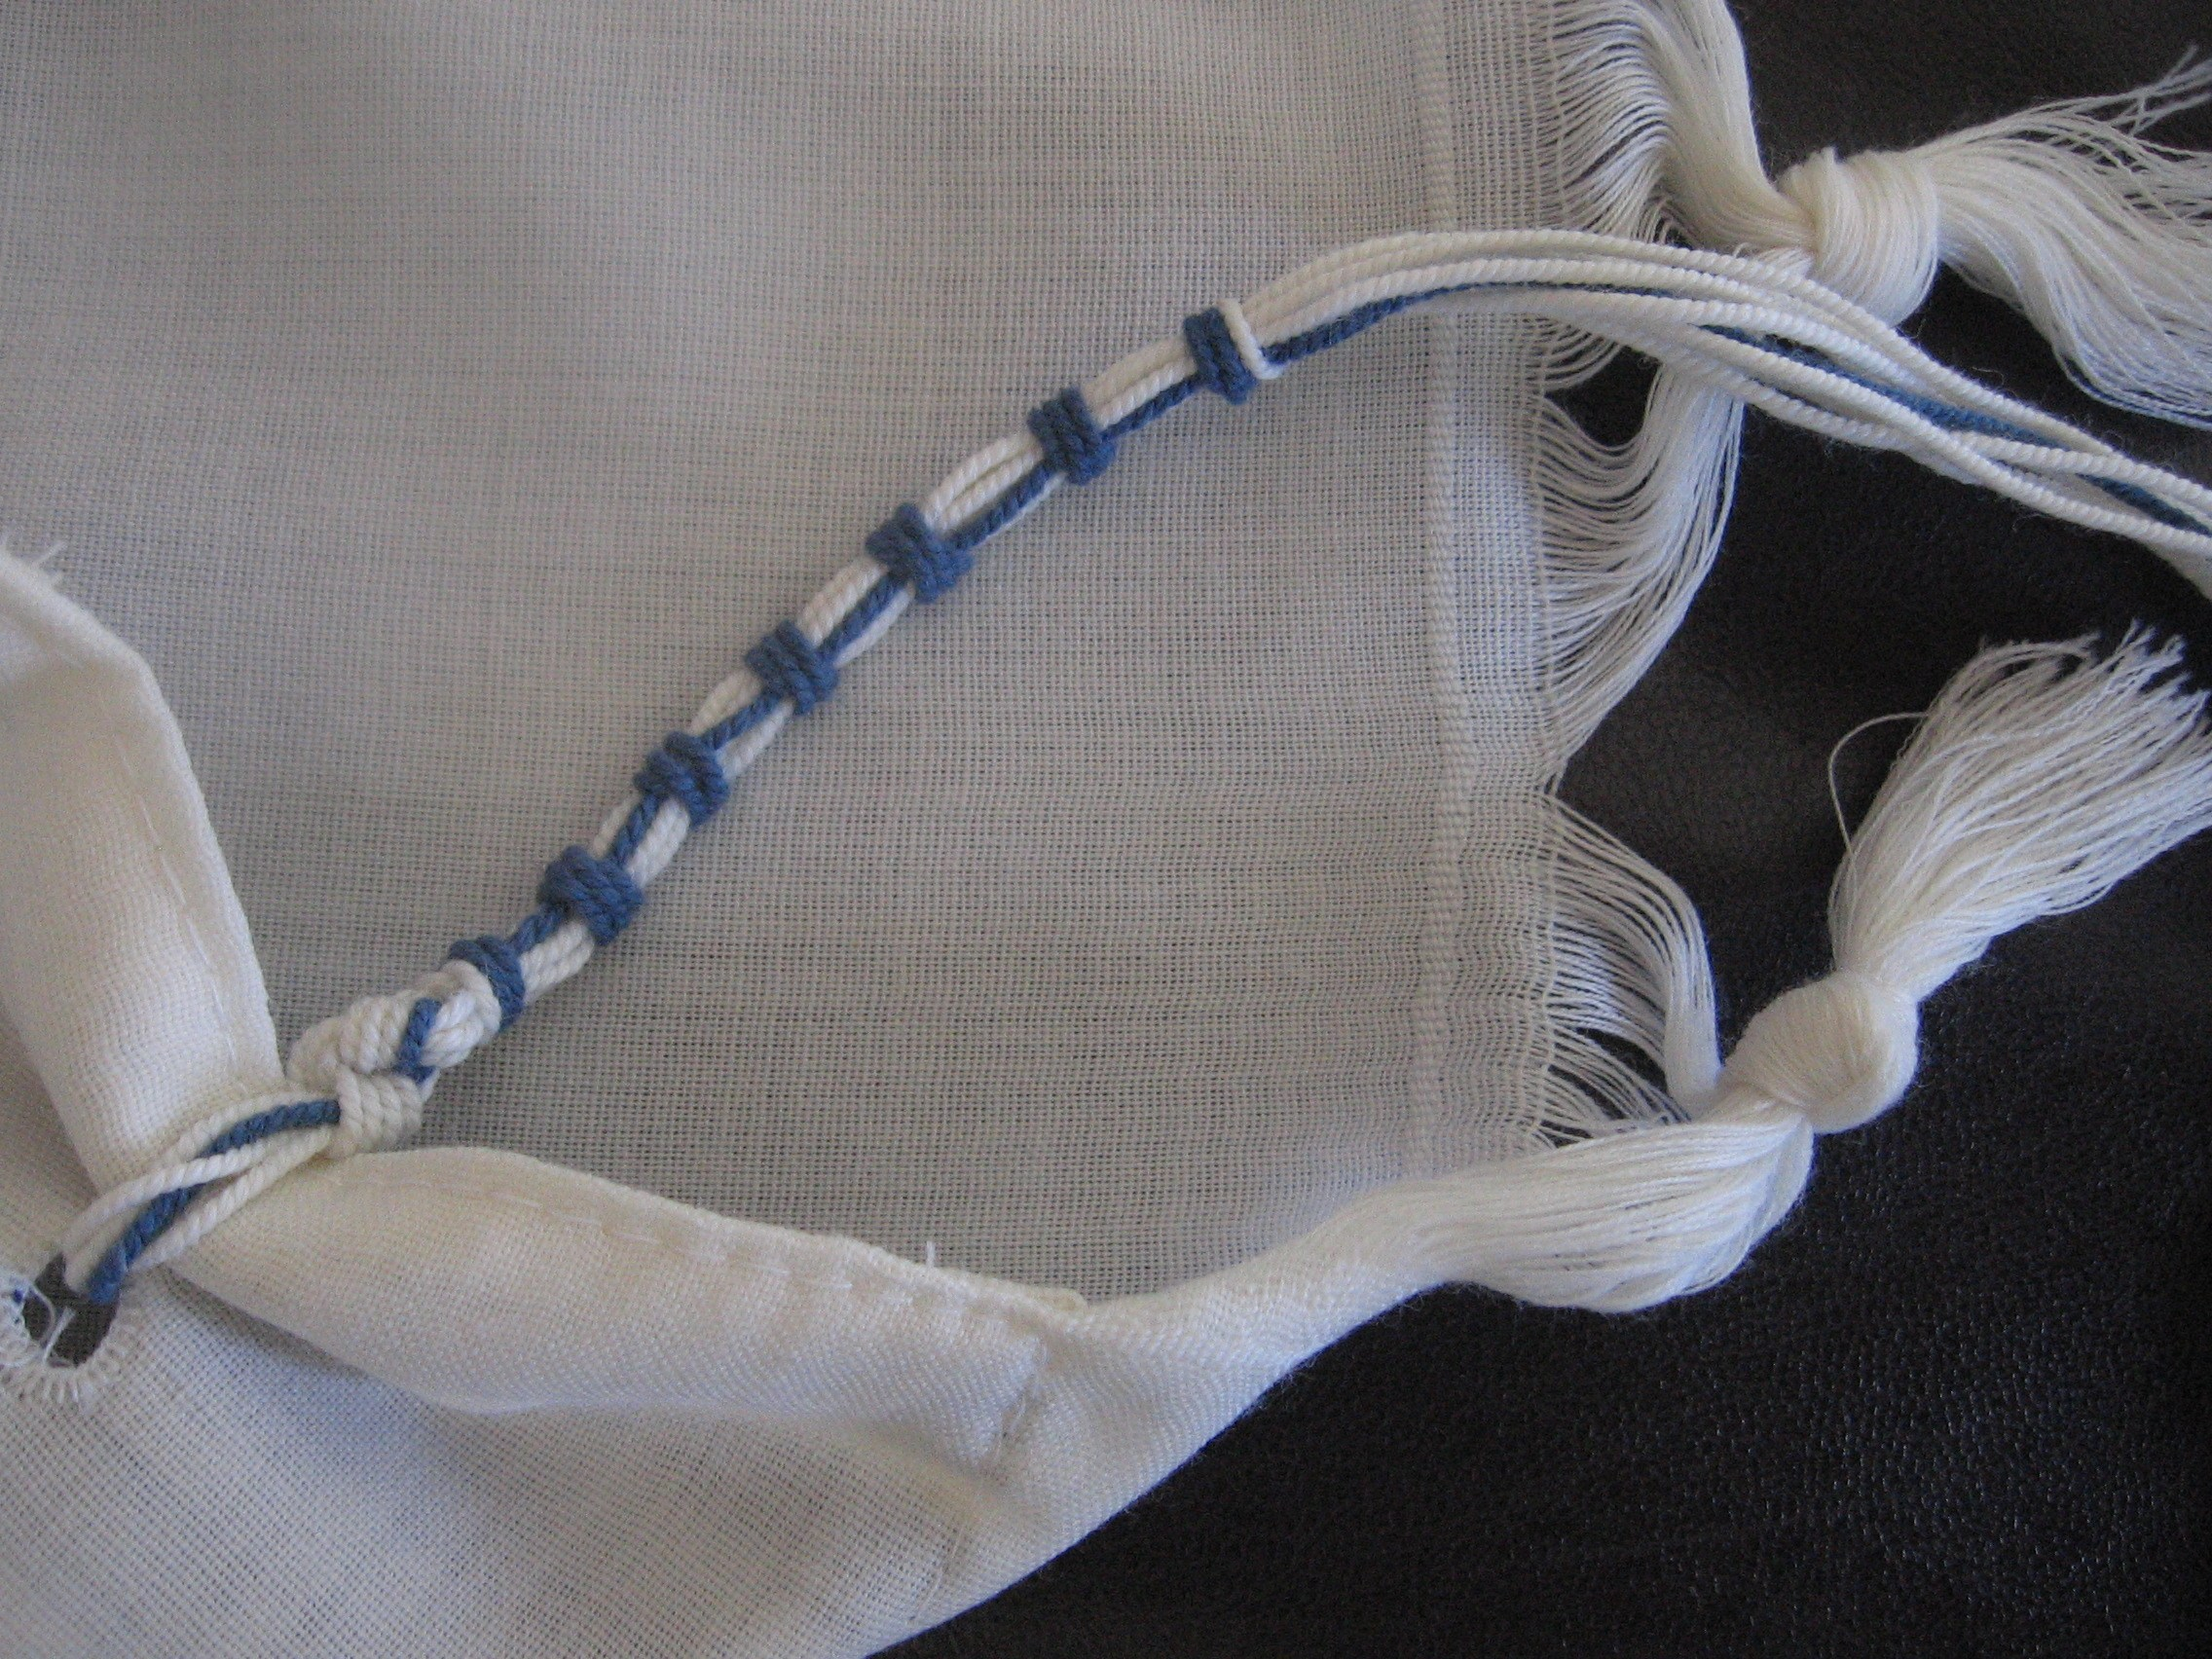 Shul dressing code: tallit and tzitzit.